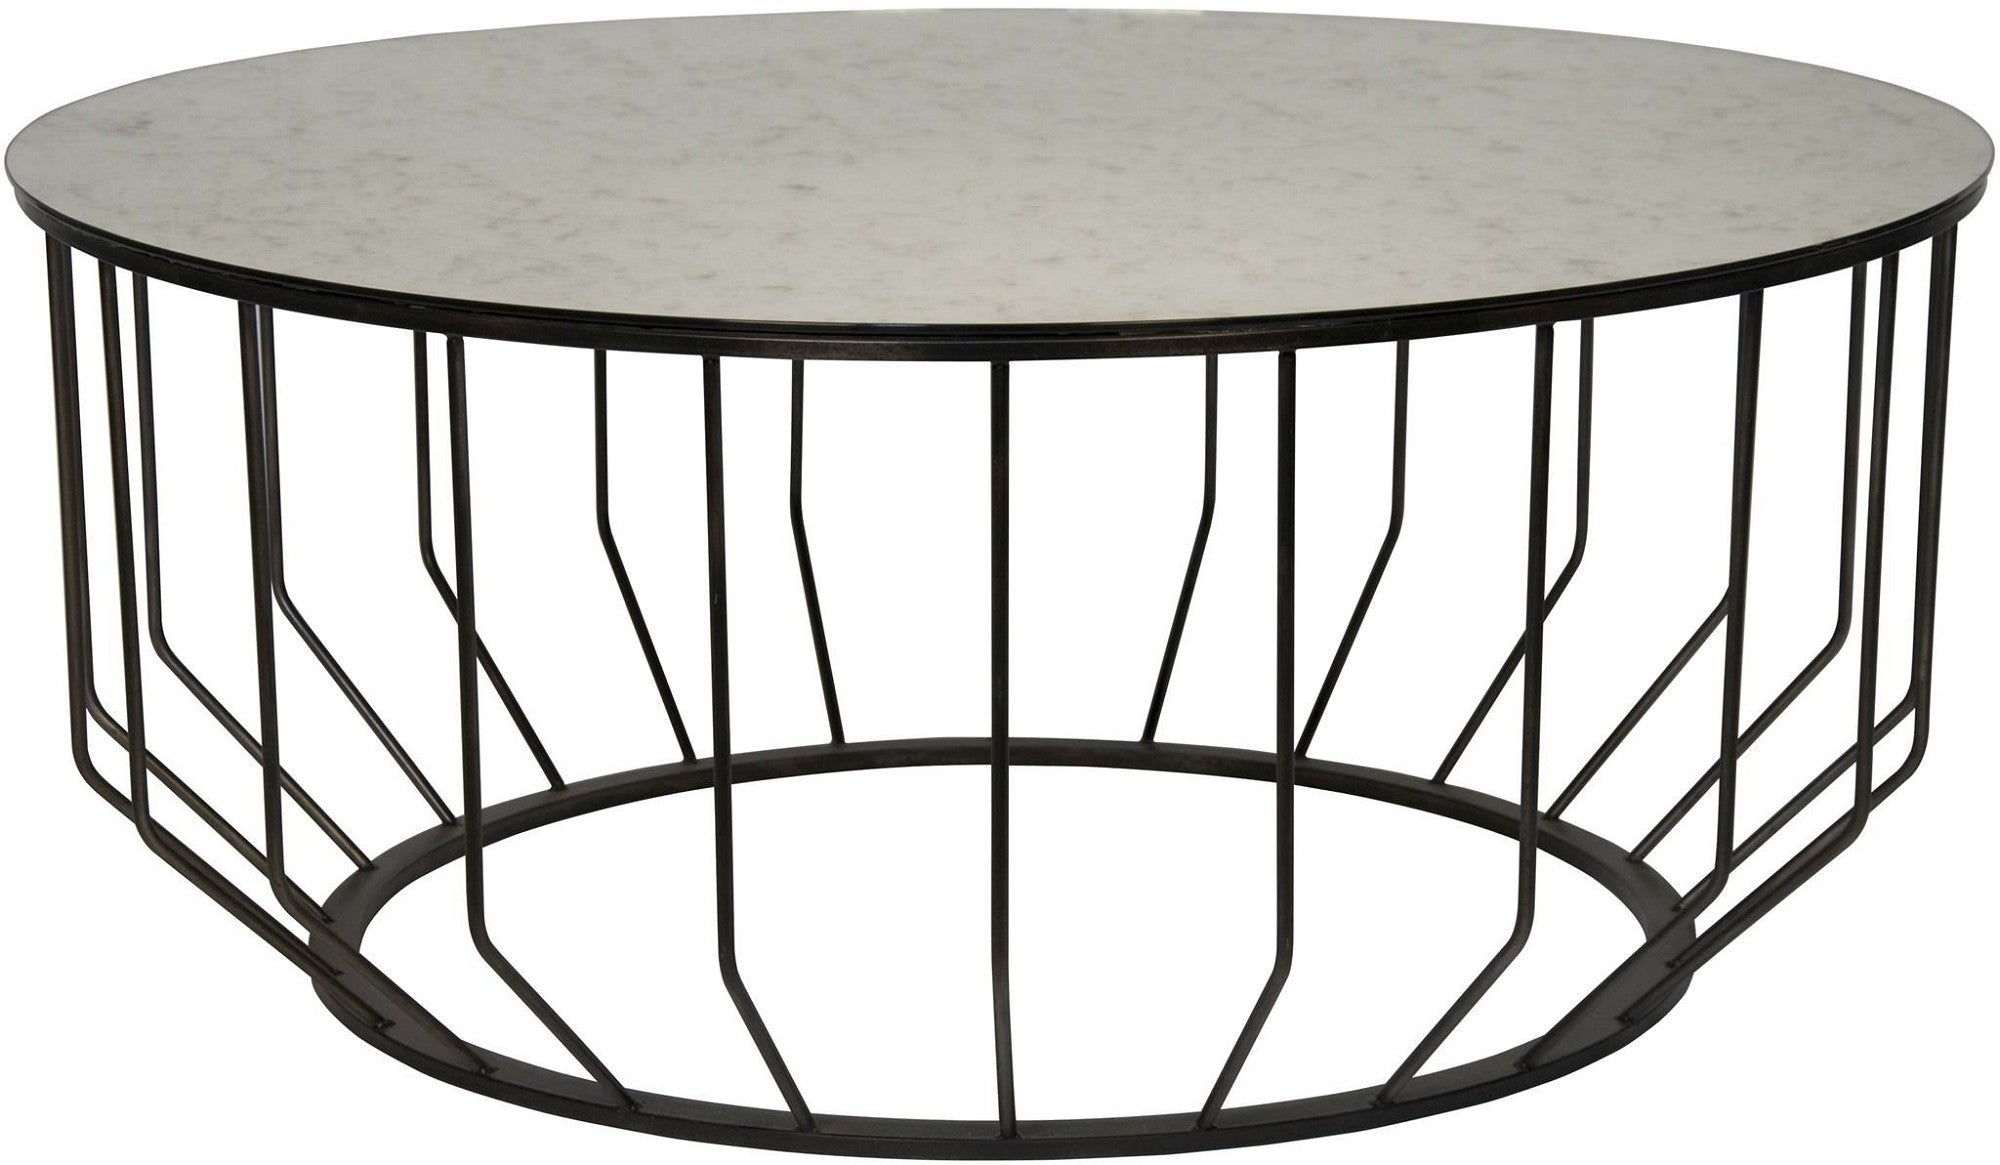 Lux Round Coffee Table  Spoked Metal Base. Tap To Expand